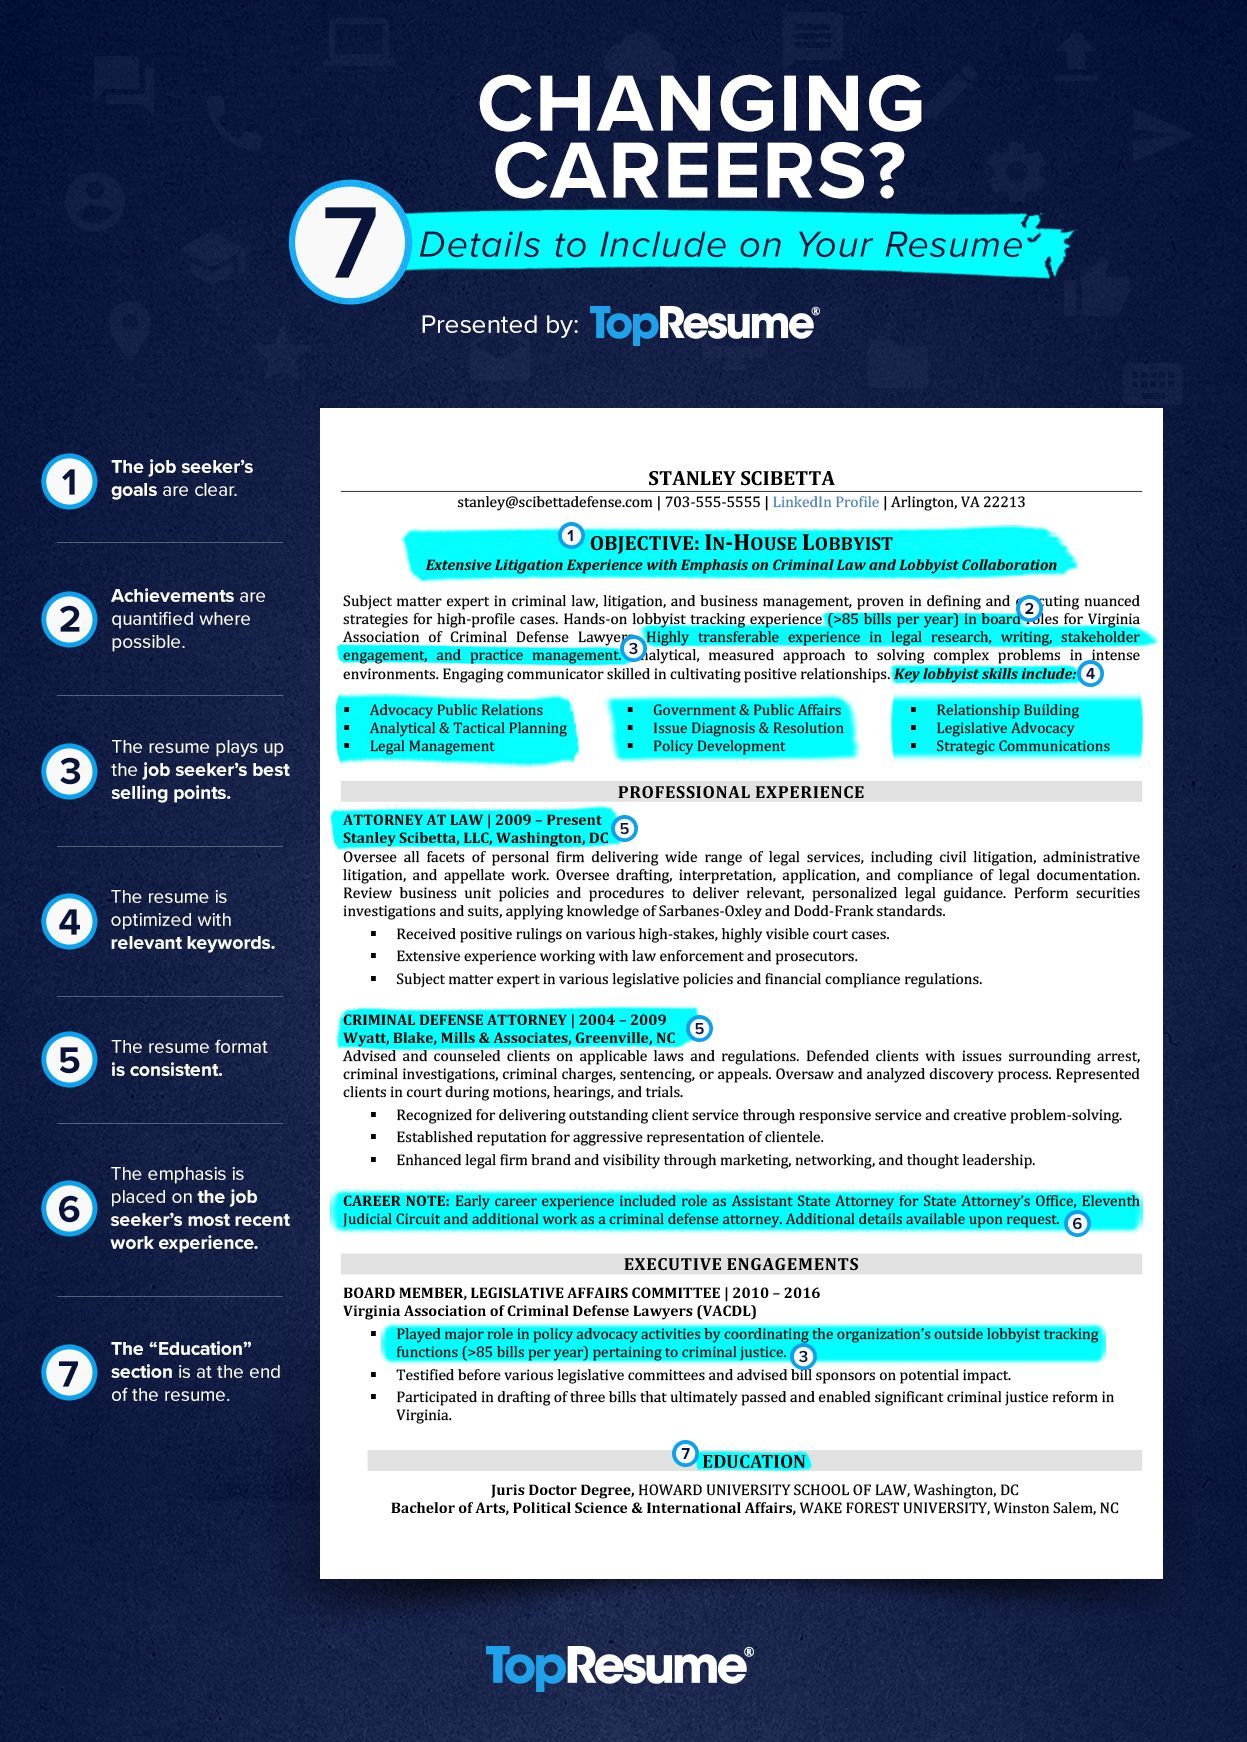 Resume Changing Careers The Average Employee Changes Jobs 10 To 15 Times In Their Careerif .